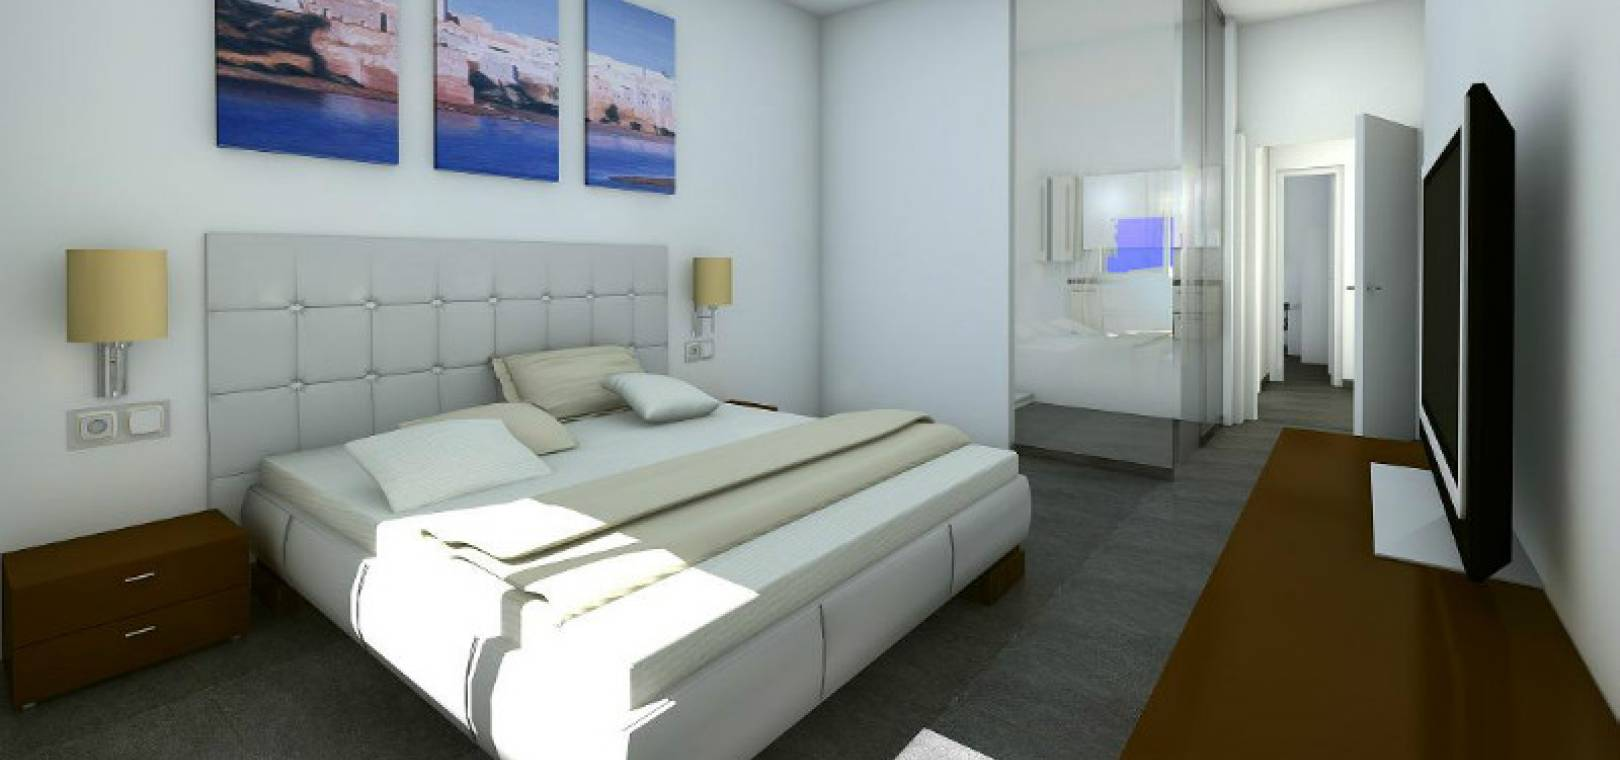 for,sale,new,apartment,punta,prima,costa,blanca,spain,op2,bedroom1